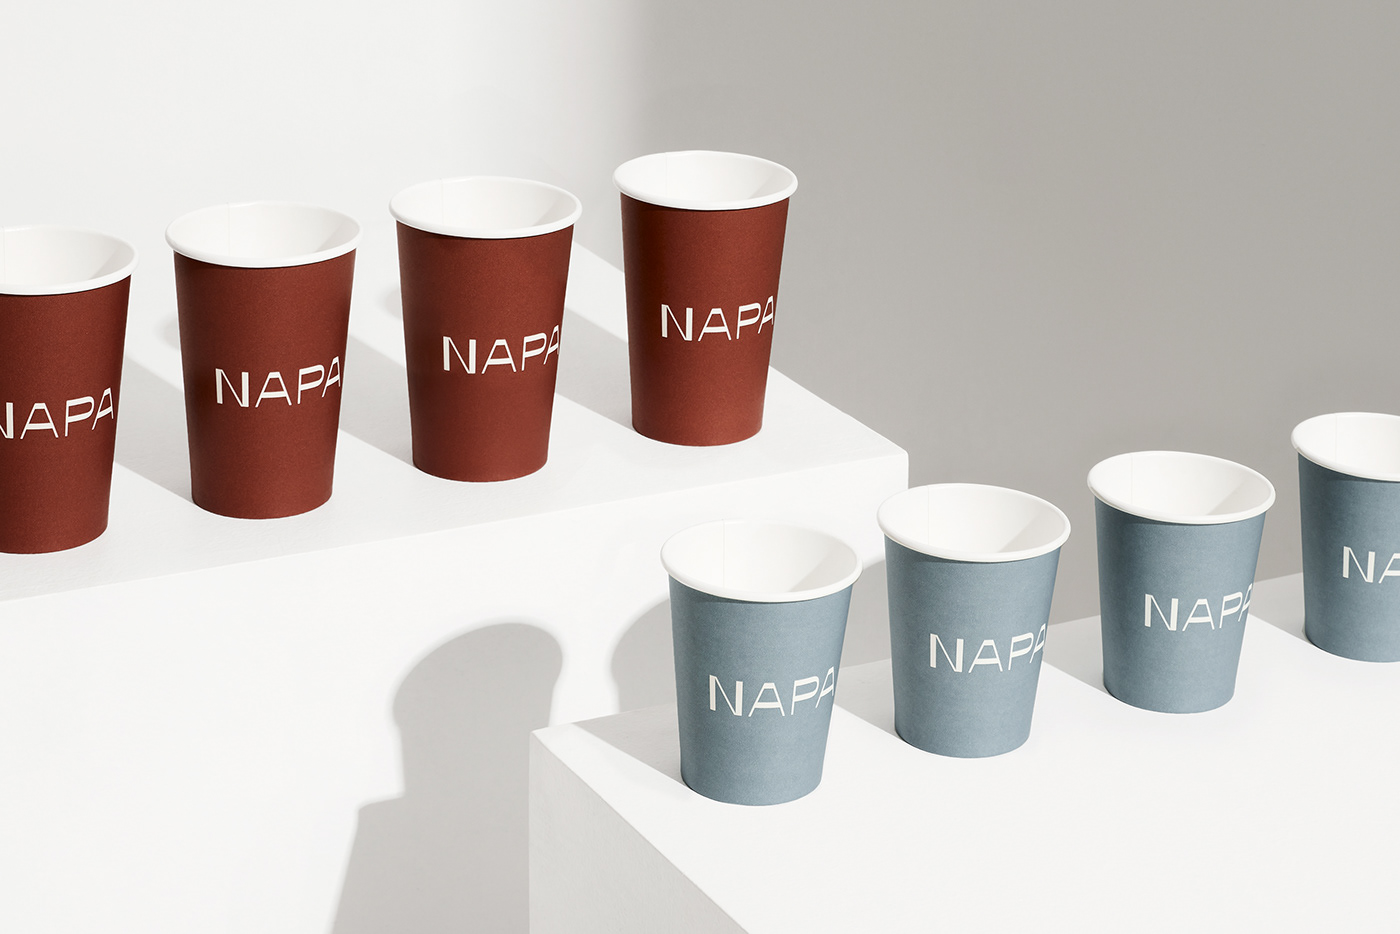 business card coffee cups curves menu Signage tape texture understated warmth